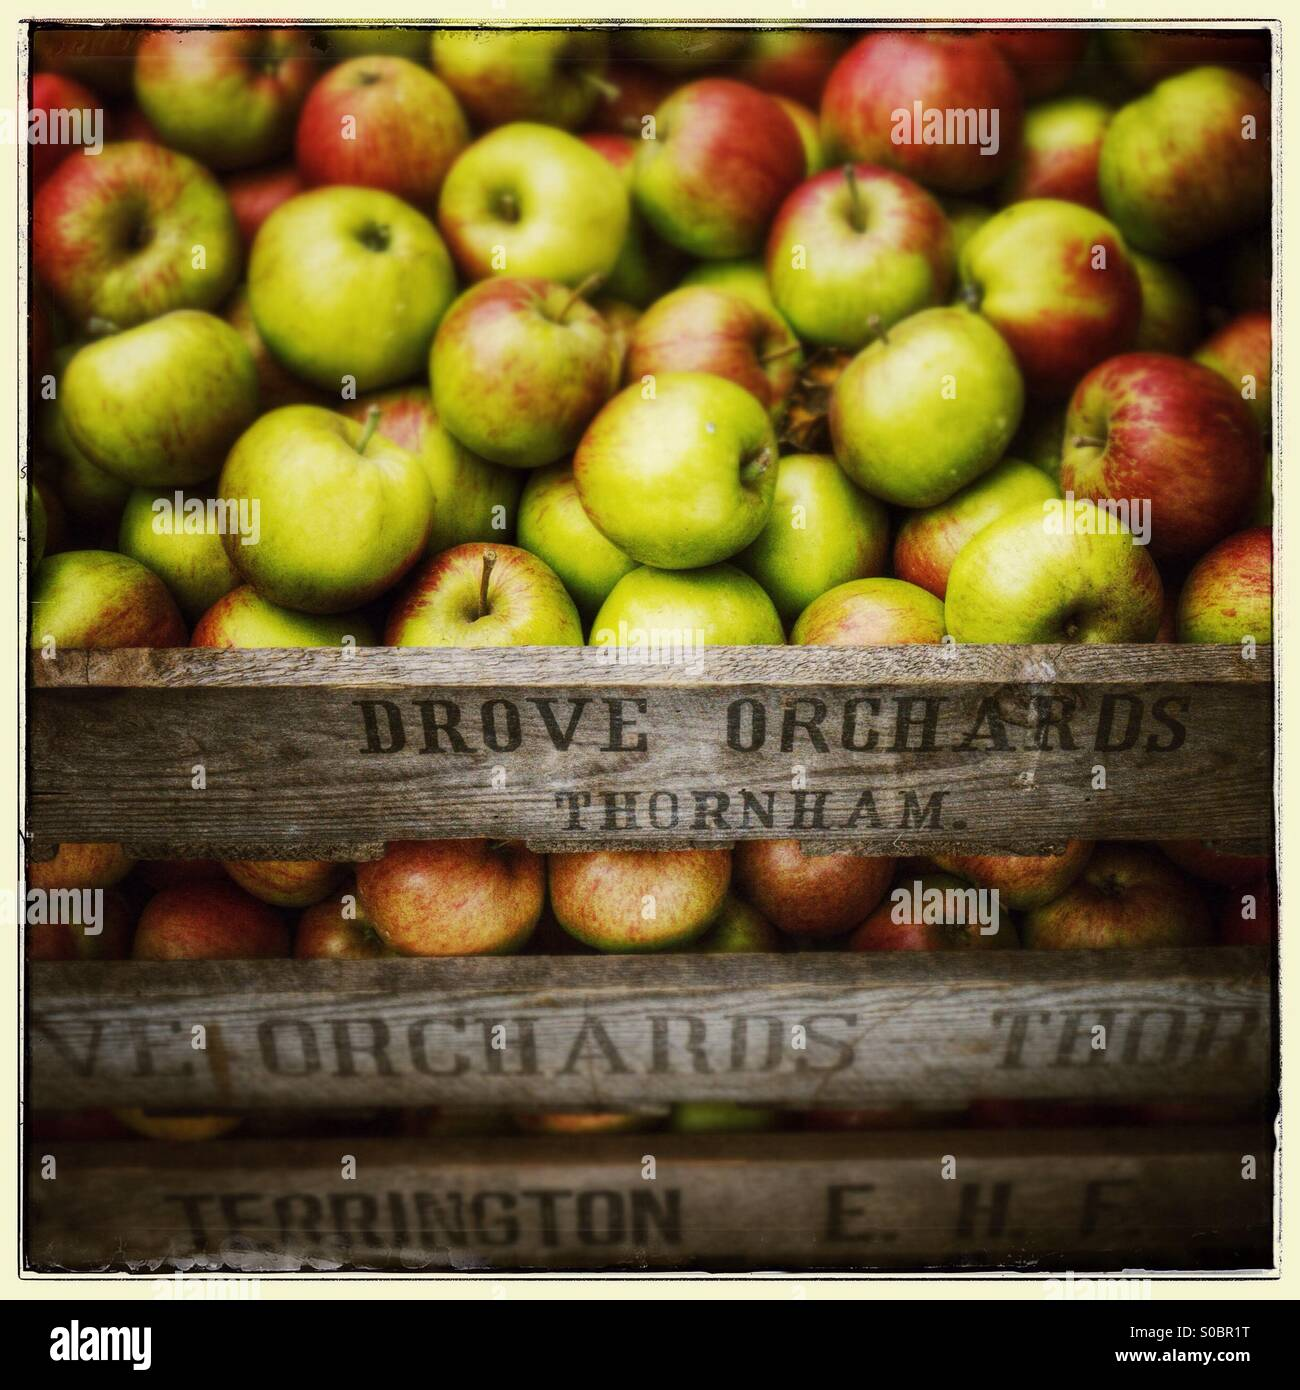 Apples in a wooden crate with sign denoting Drove Orchards, Thornham - Stock Image